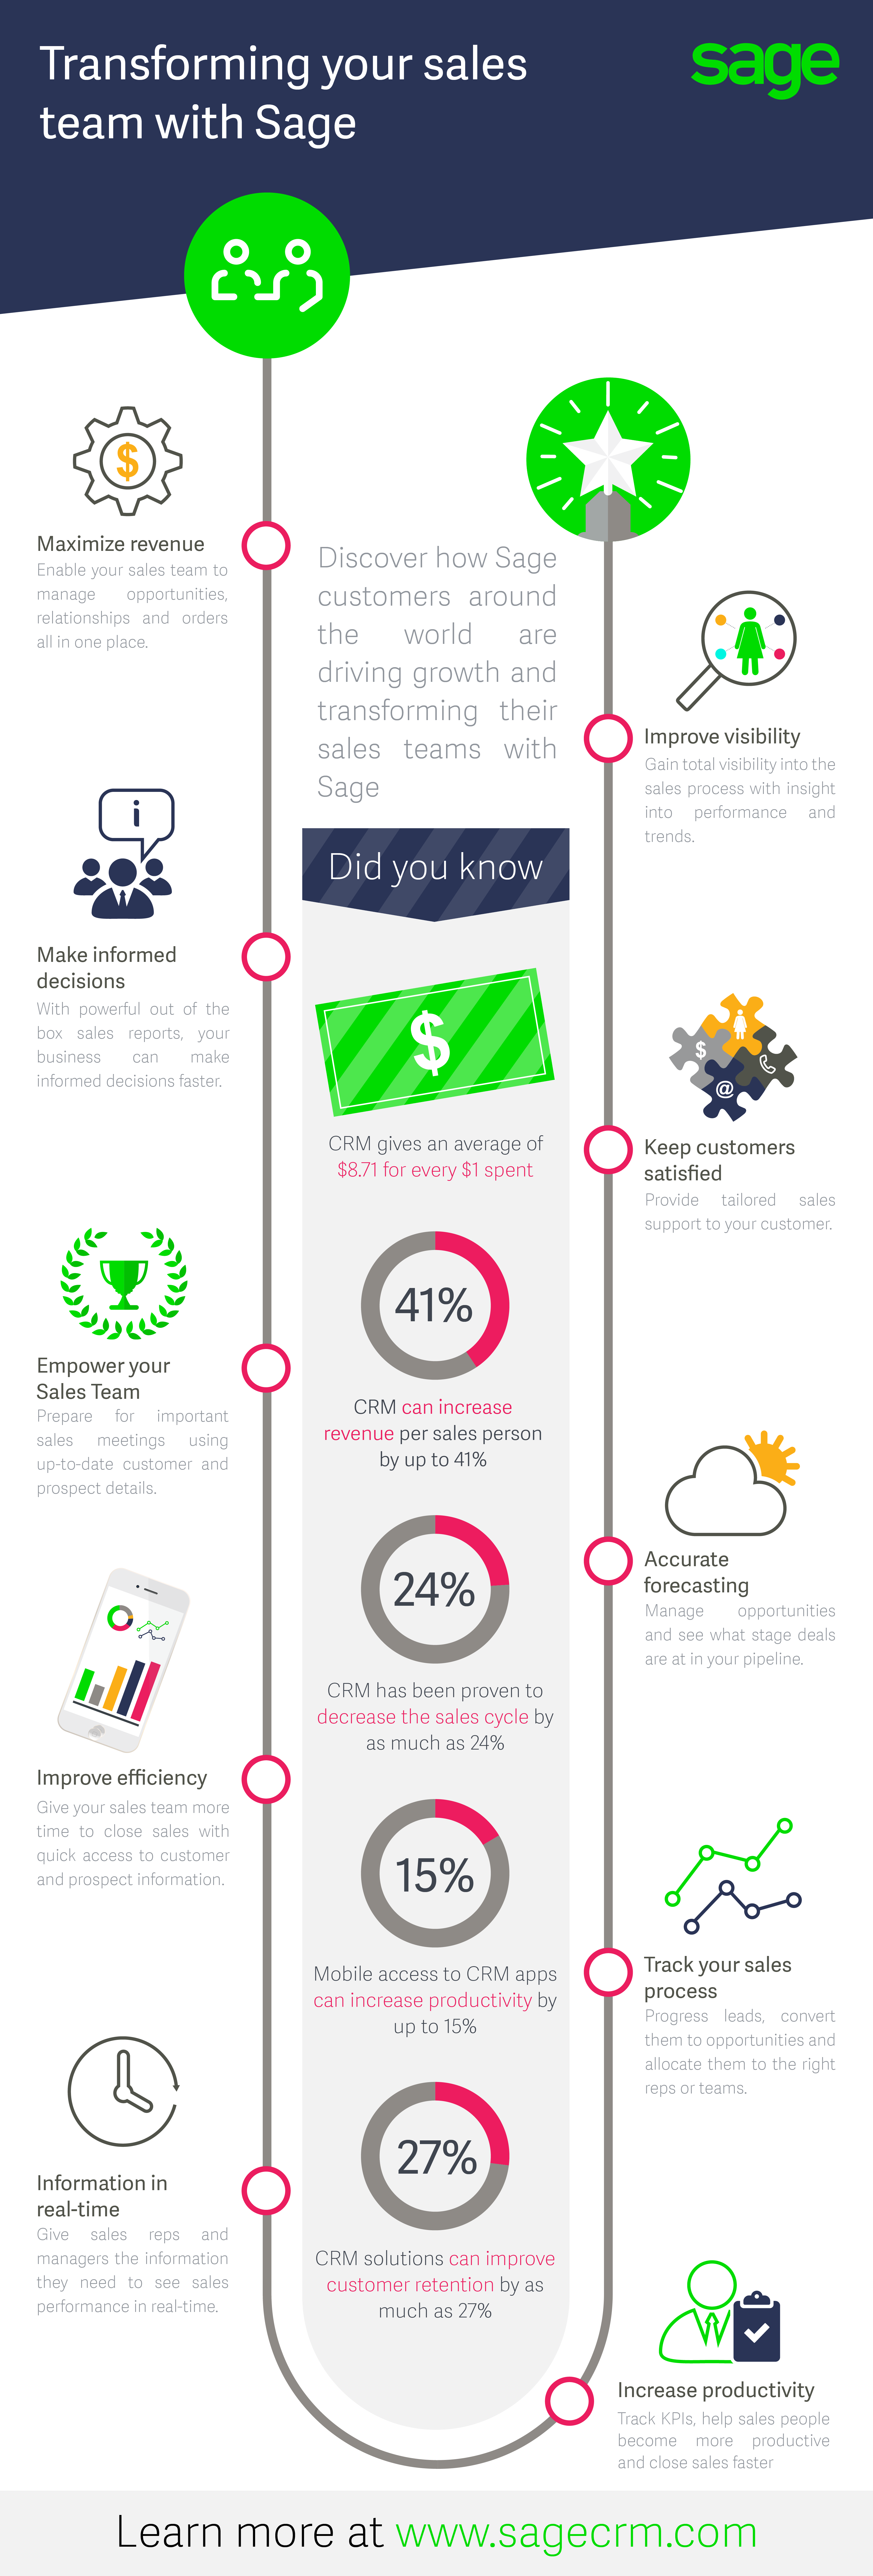 Sage_CRM_sales_team_infographic.png